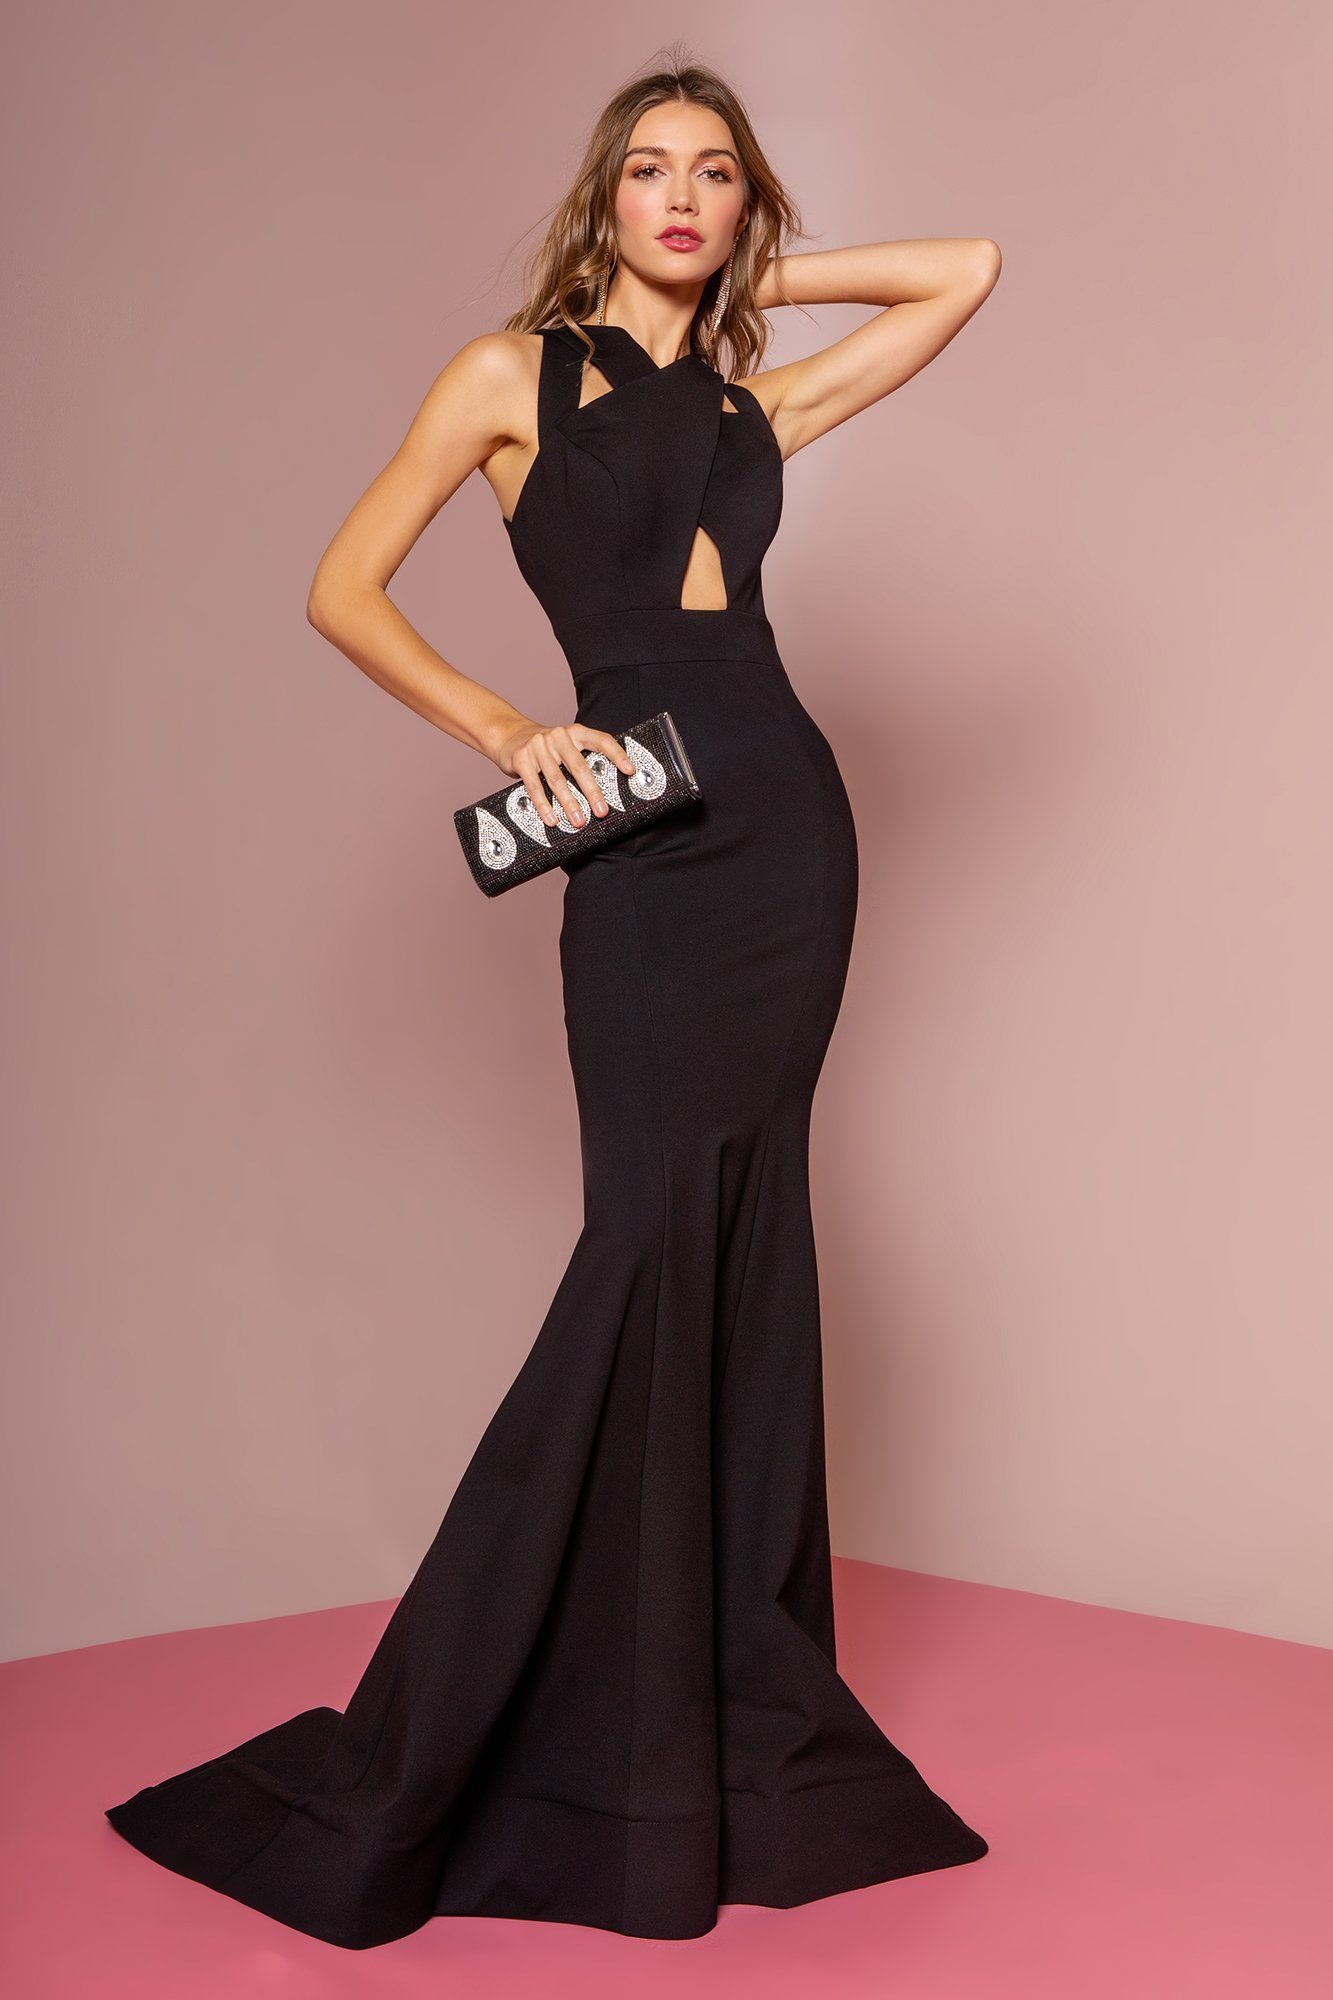 77146b01c7 Tight Fitted Black Prom Dresses - Gomes Weine AG